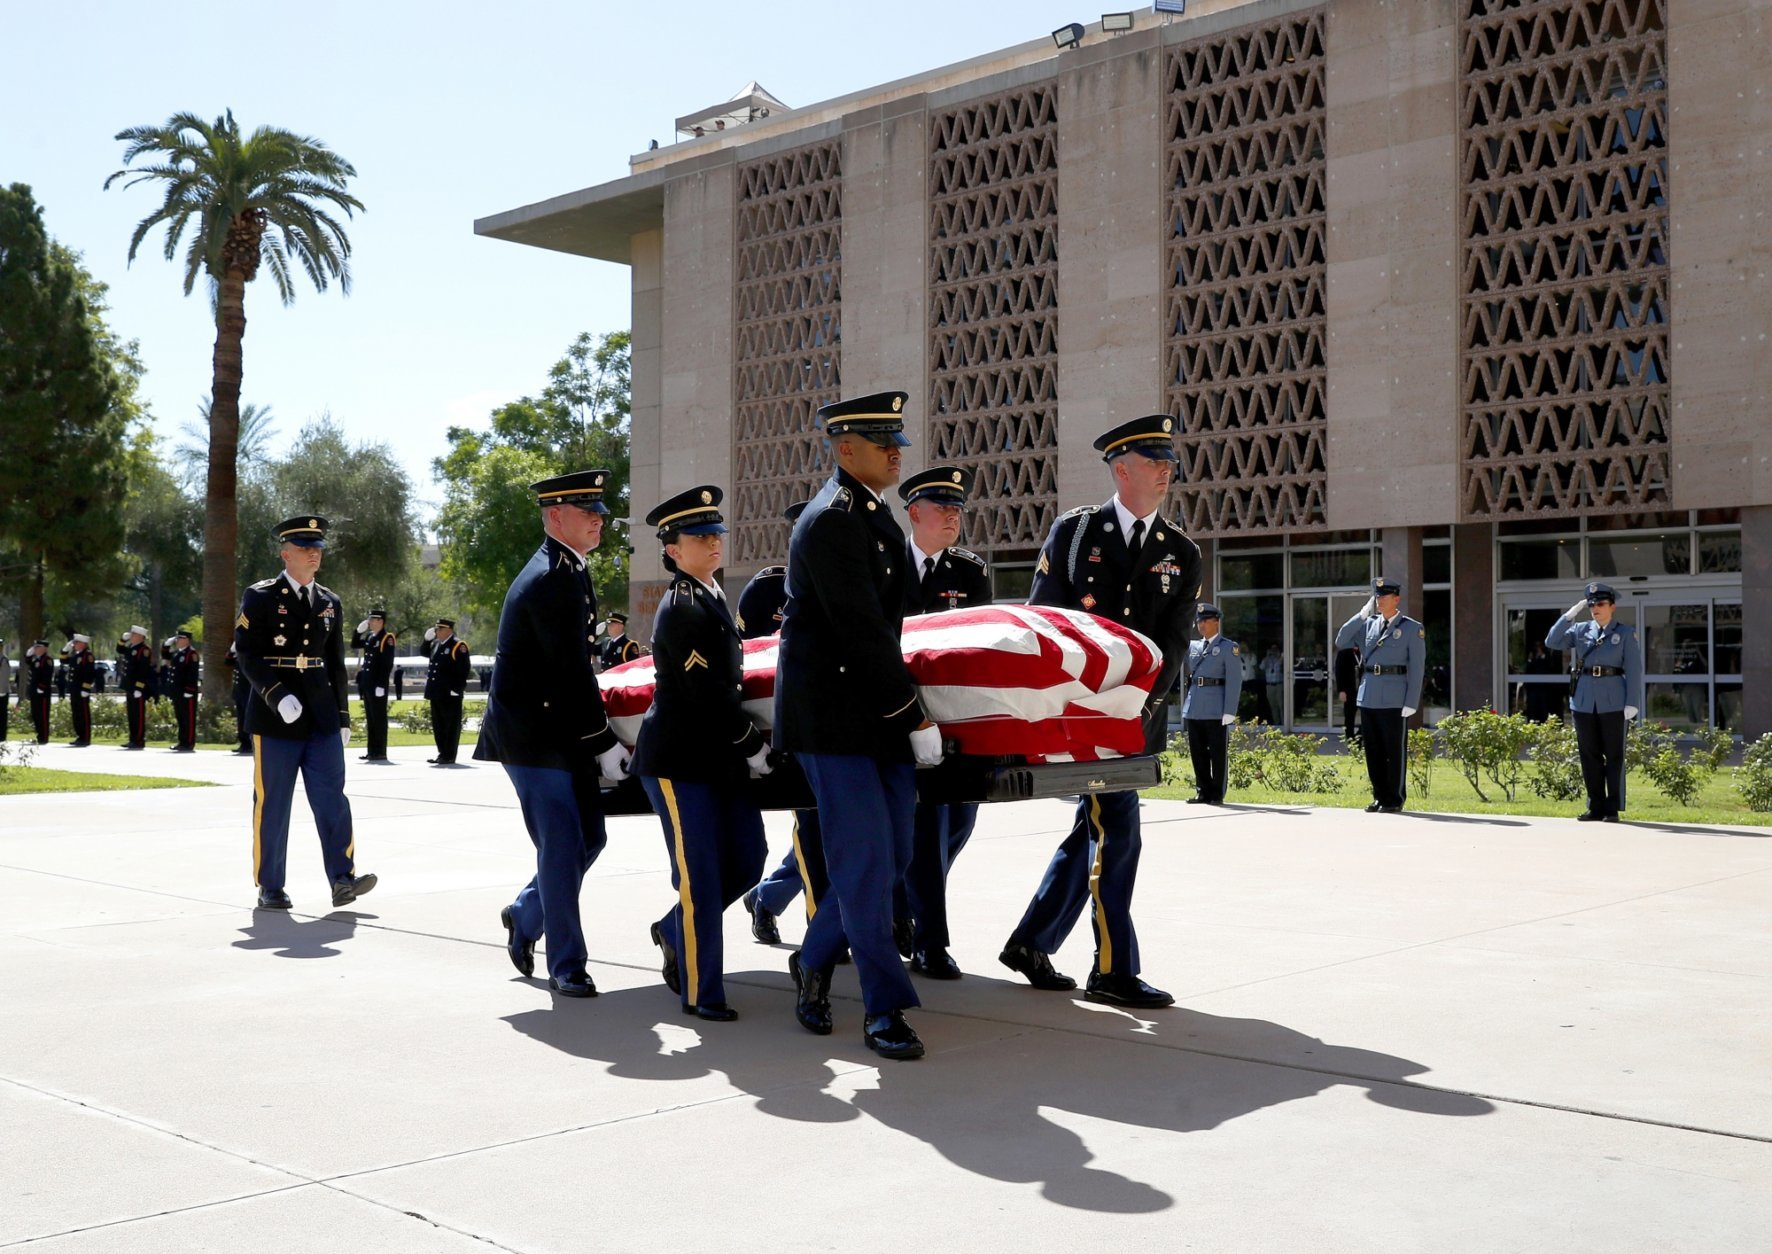 Members of the Arizona National Guard  carry the casket of Sen. John McCain, R-Ariz., into the Capitol rotunda for a memorial service, Wednesday, Aug. 29, 2018, at the Capitol in Phoenix. (AP Photo/Matt York)